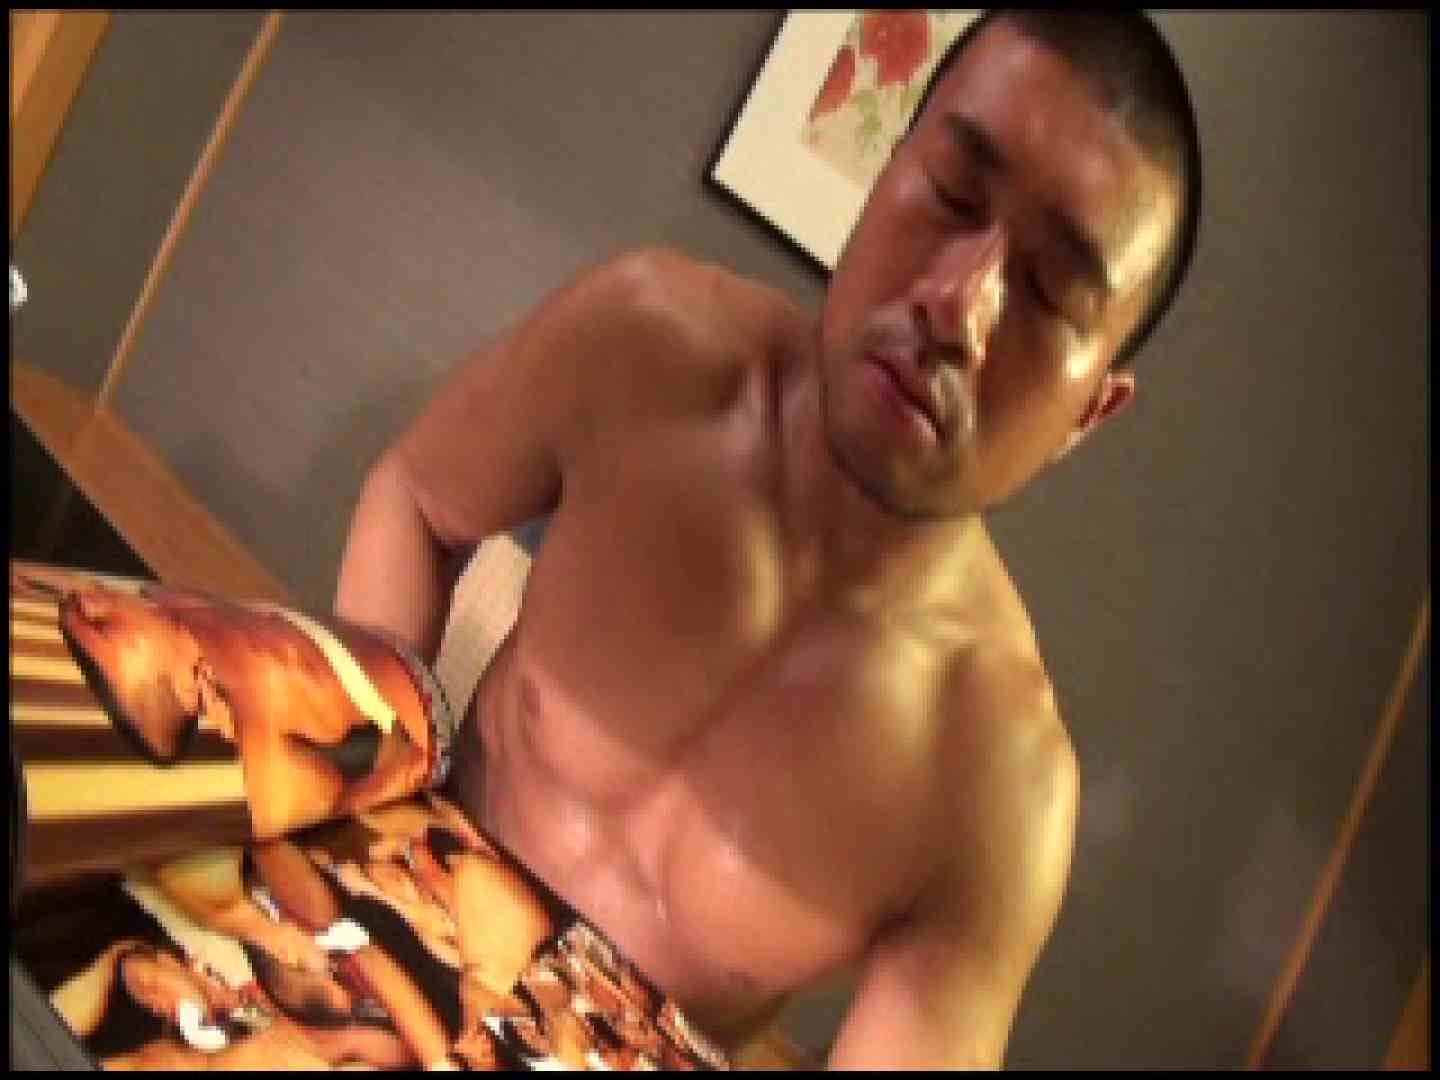 SUPER MUSCLE GAIN!!〜鋼鉄の筋肉〜vol.01  オナニー 男同士動画 100pic 92